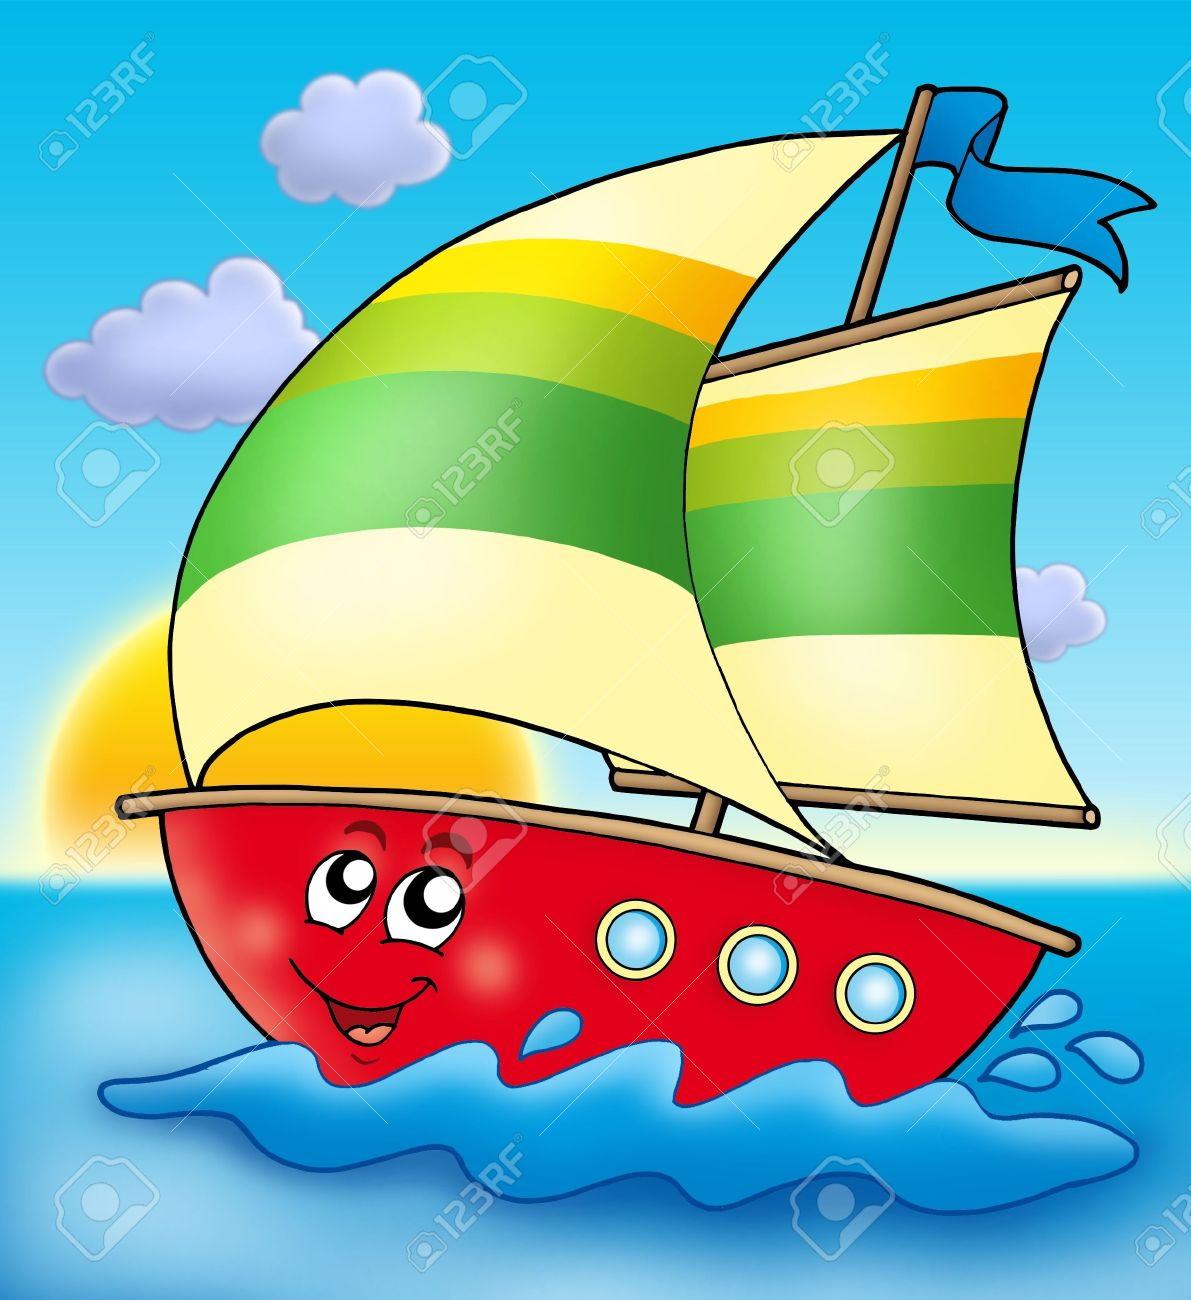 Cartoon sailing boat with sunset - color illustration. Stock Photo - 4874128